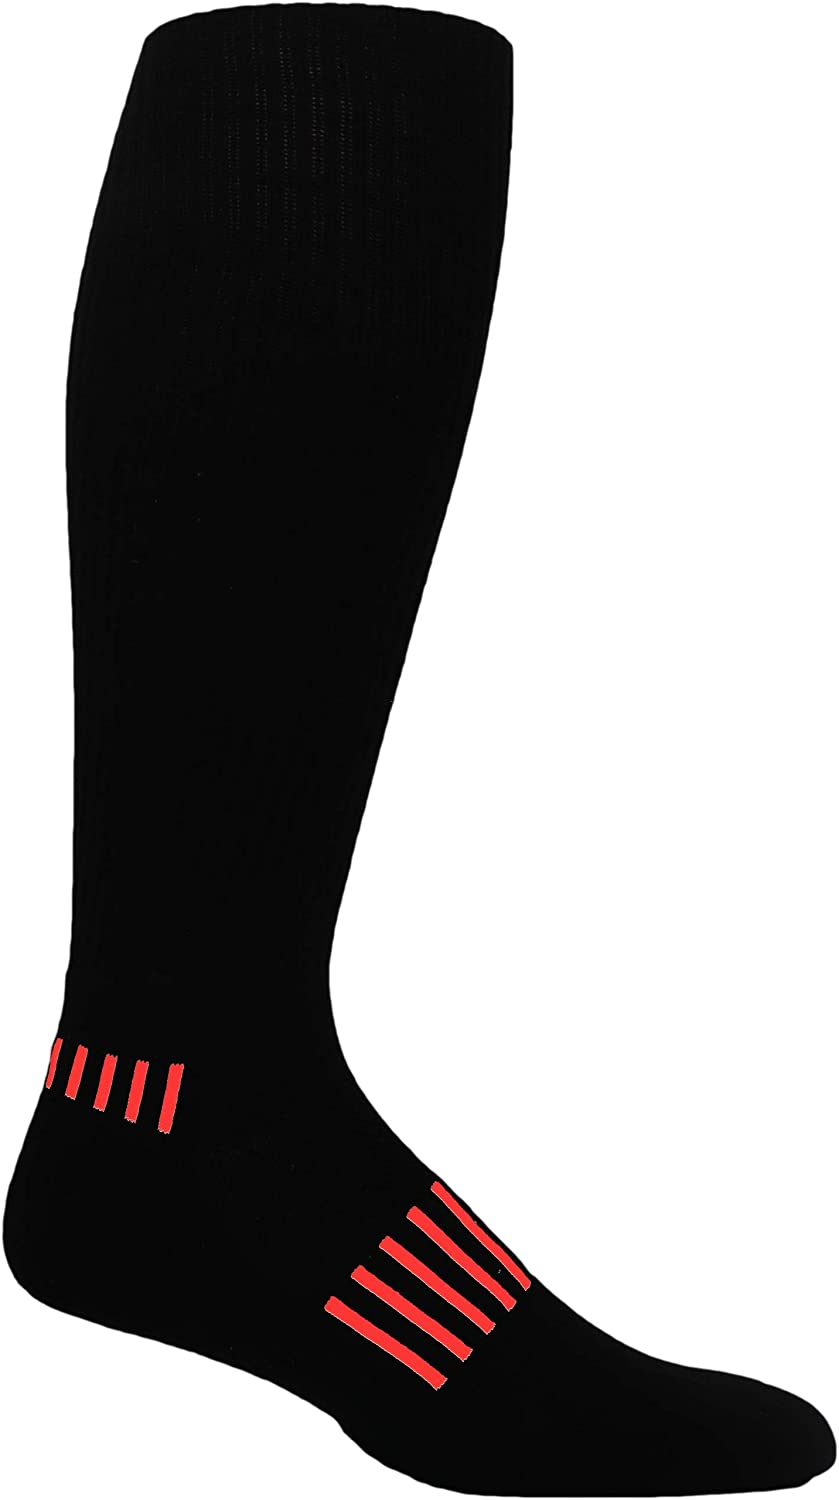 MOXY Socks Black/Red Standard Athletic Knee-High Soccer Socks